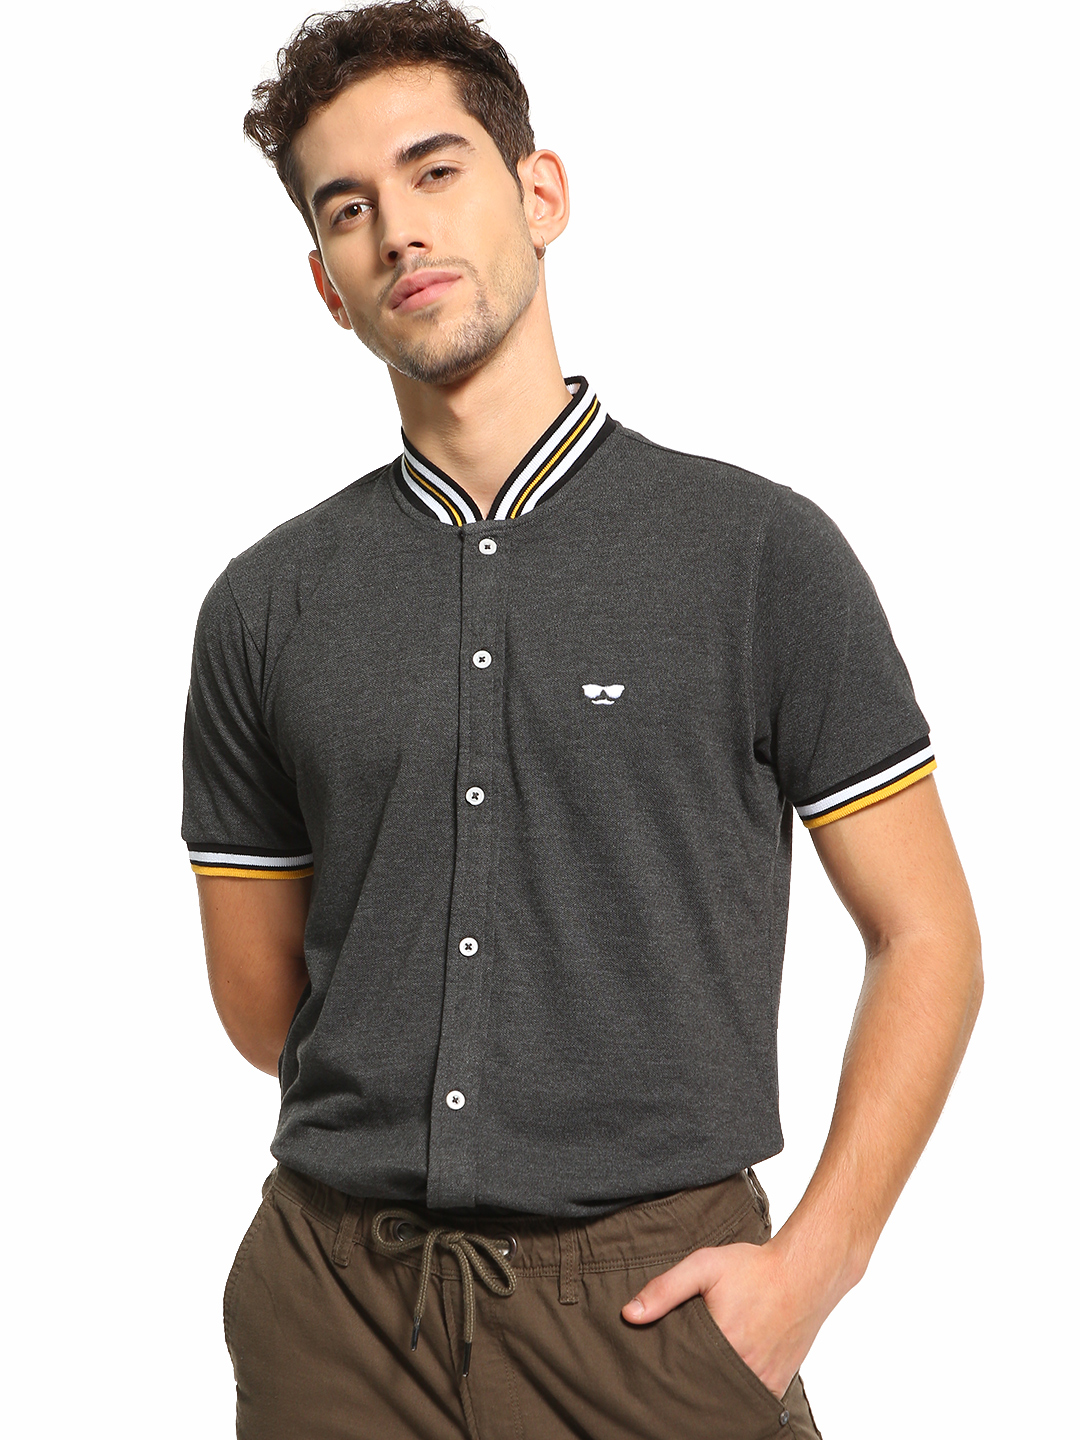 Garcon Grey Baseball Collar Pique Shirt 1